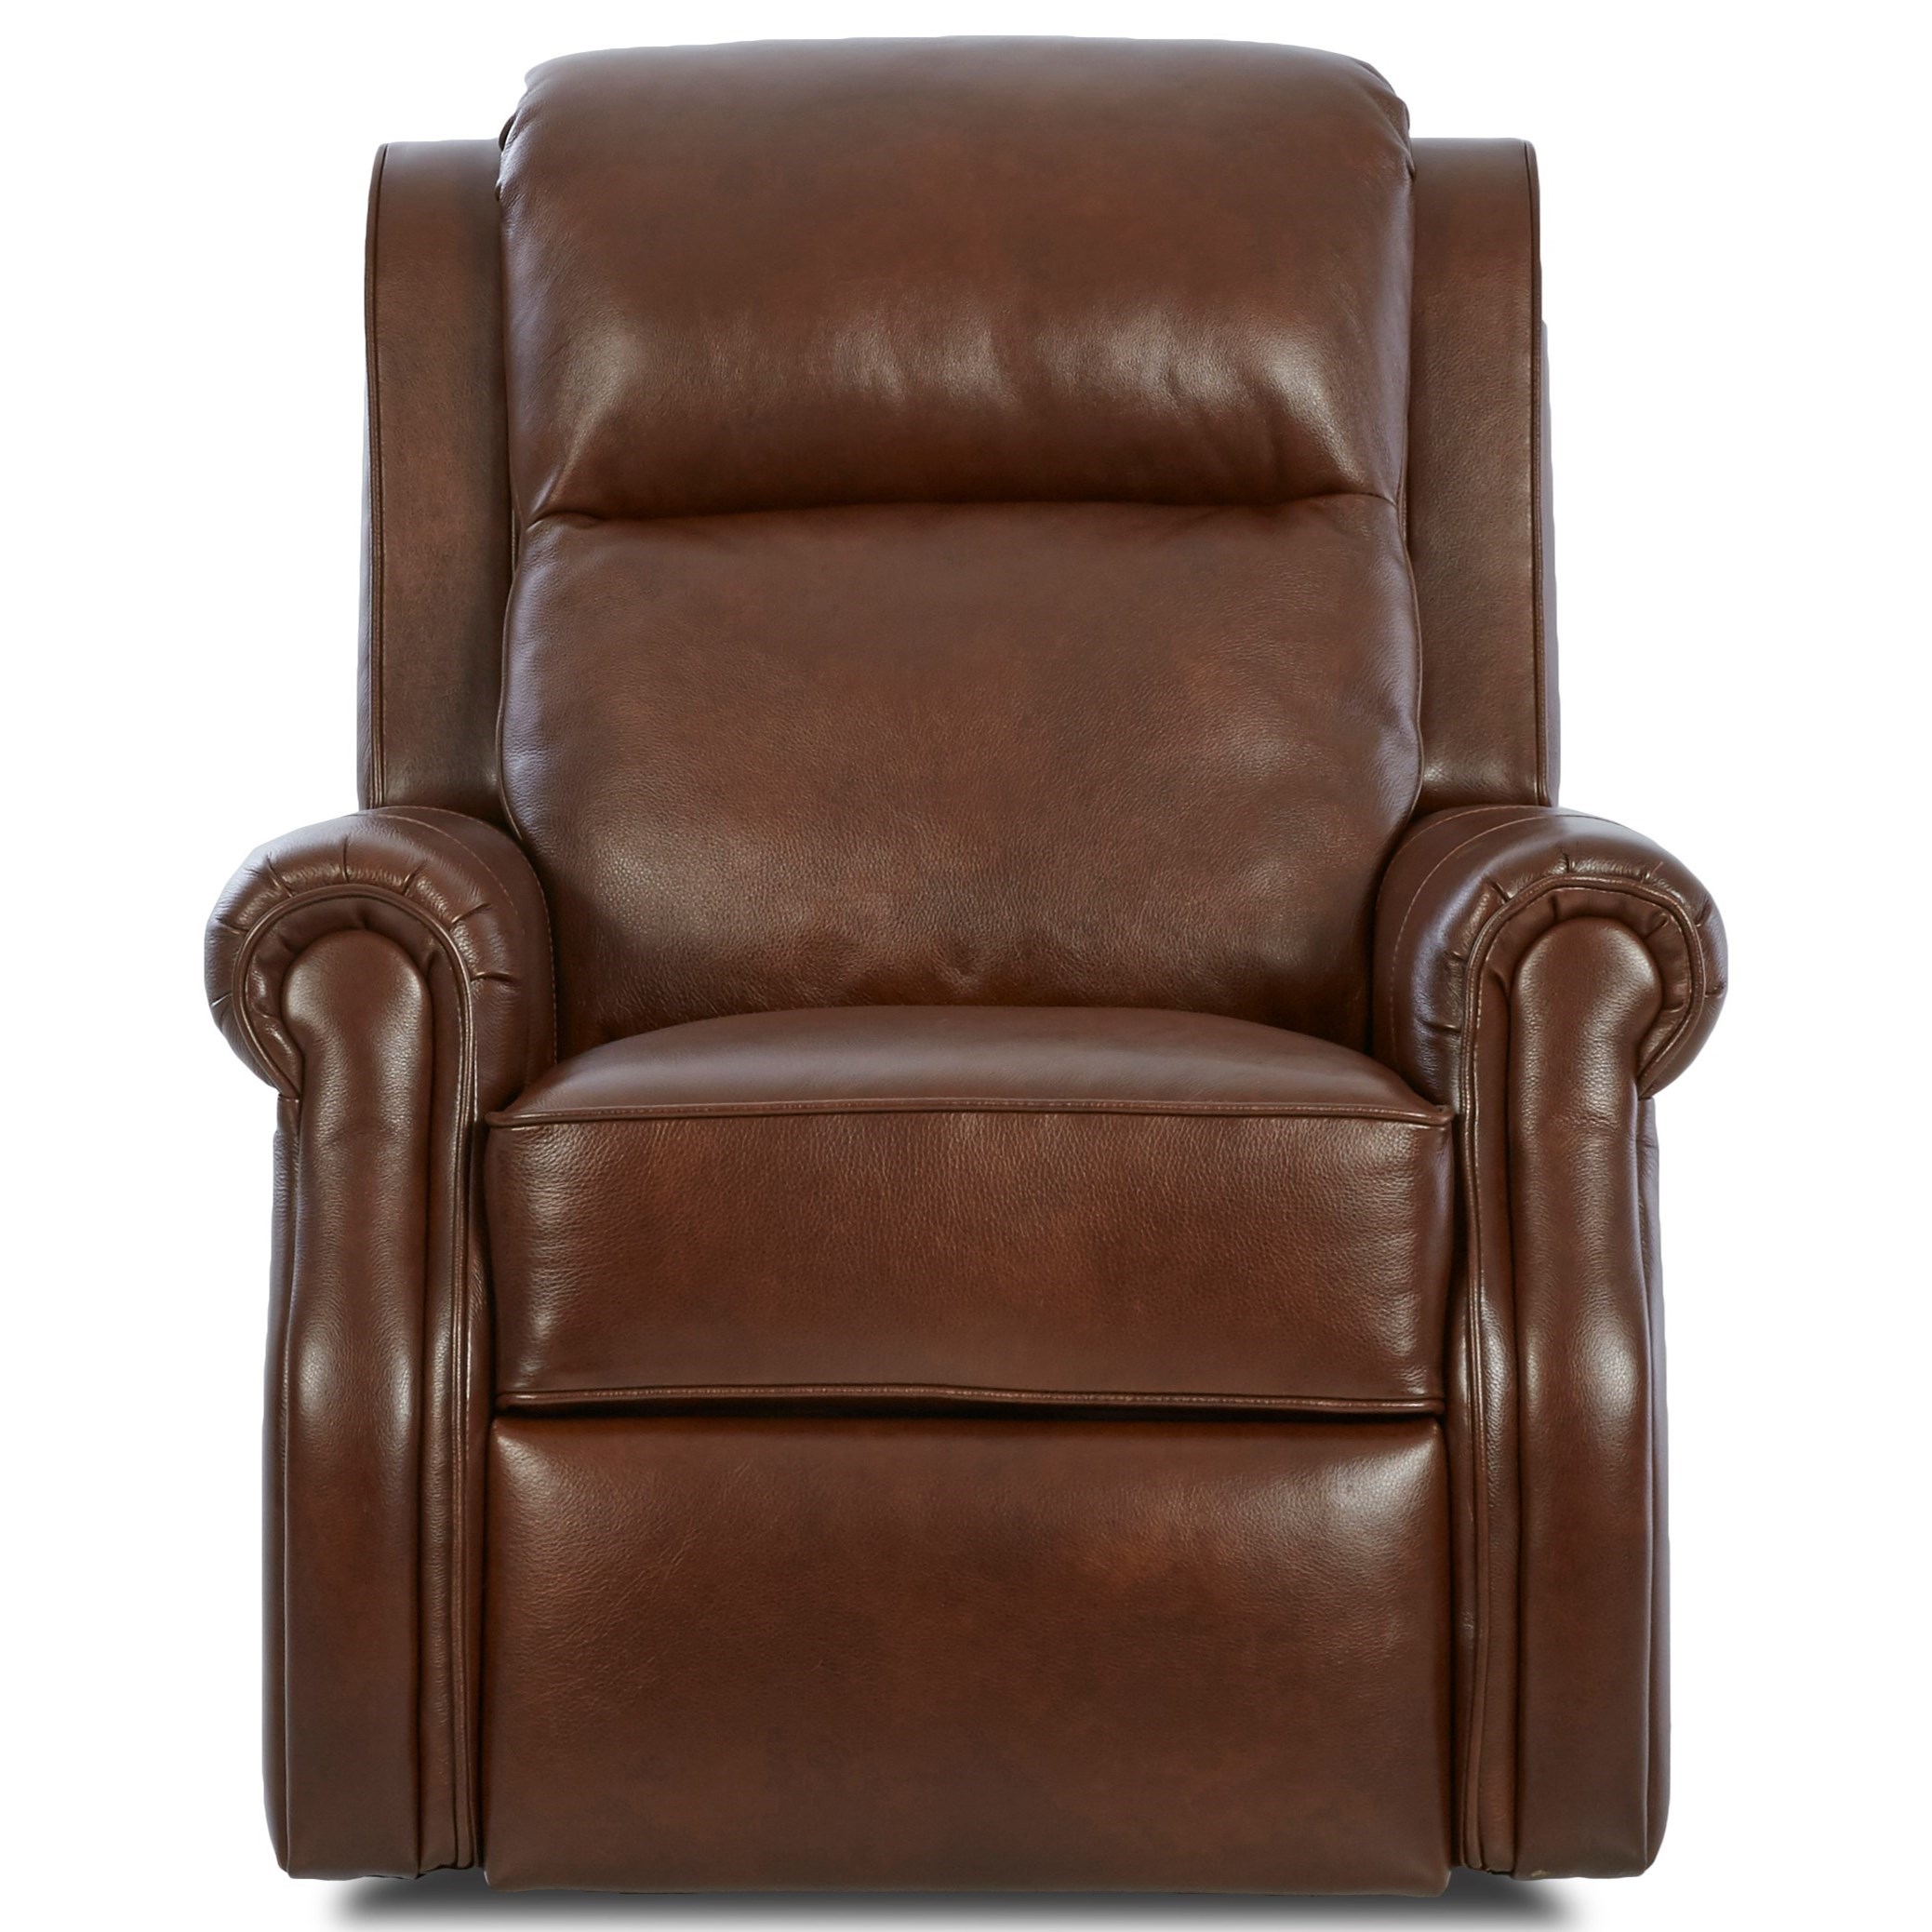 Jamestown Power Recliner w/ Pwr Head and Lumbar by Comfort Design at Stuckey Furniture